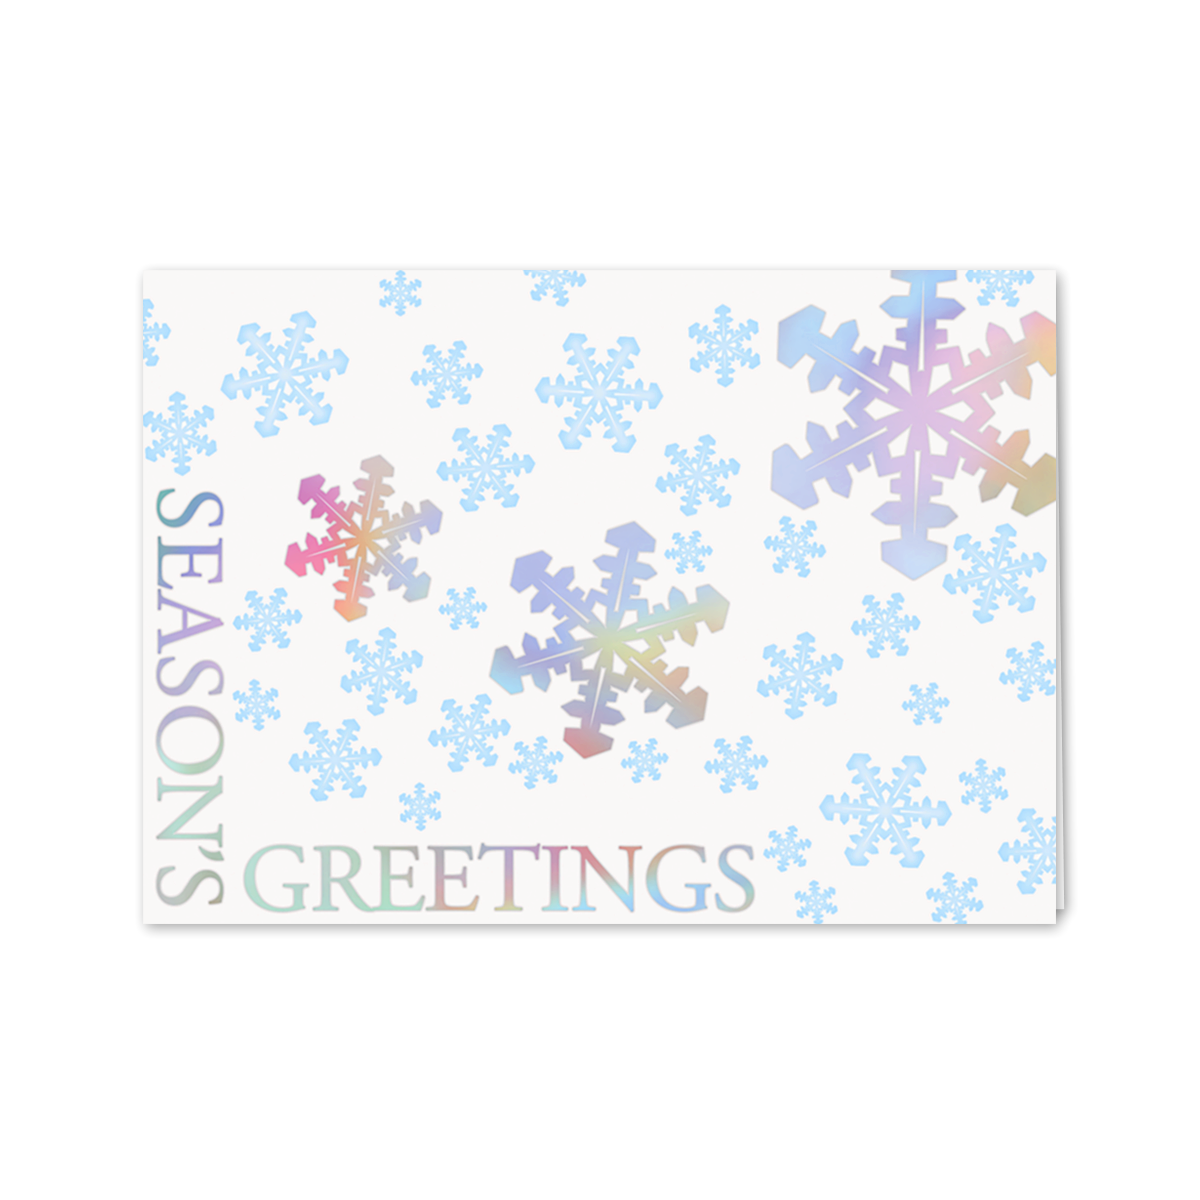 Holographic snowflakes greeting card mines press picture of holographic snowflakes greeting card kristyandbryce Gallery